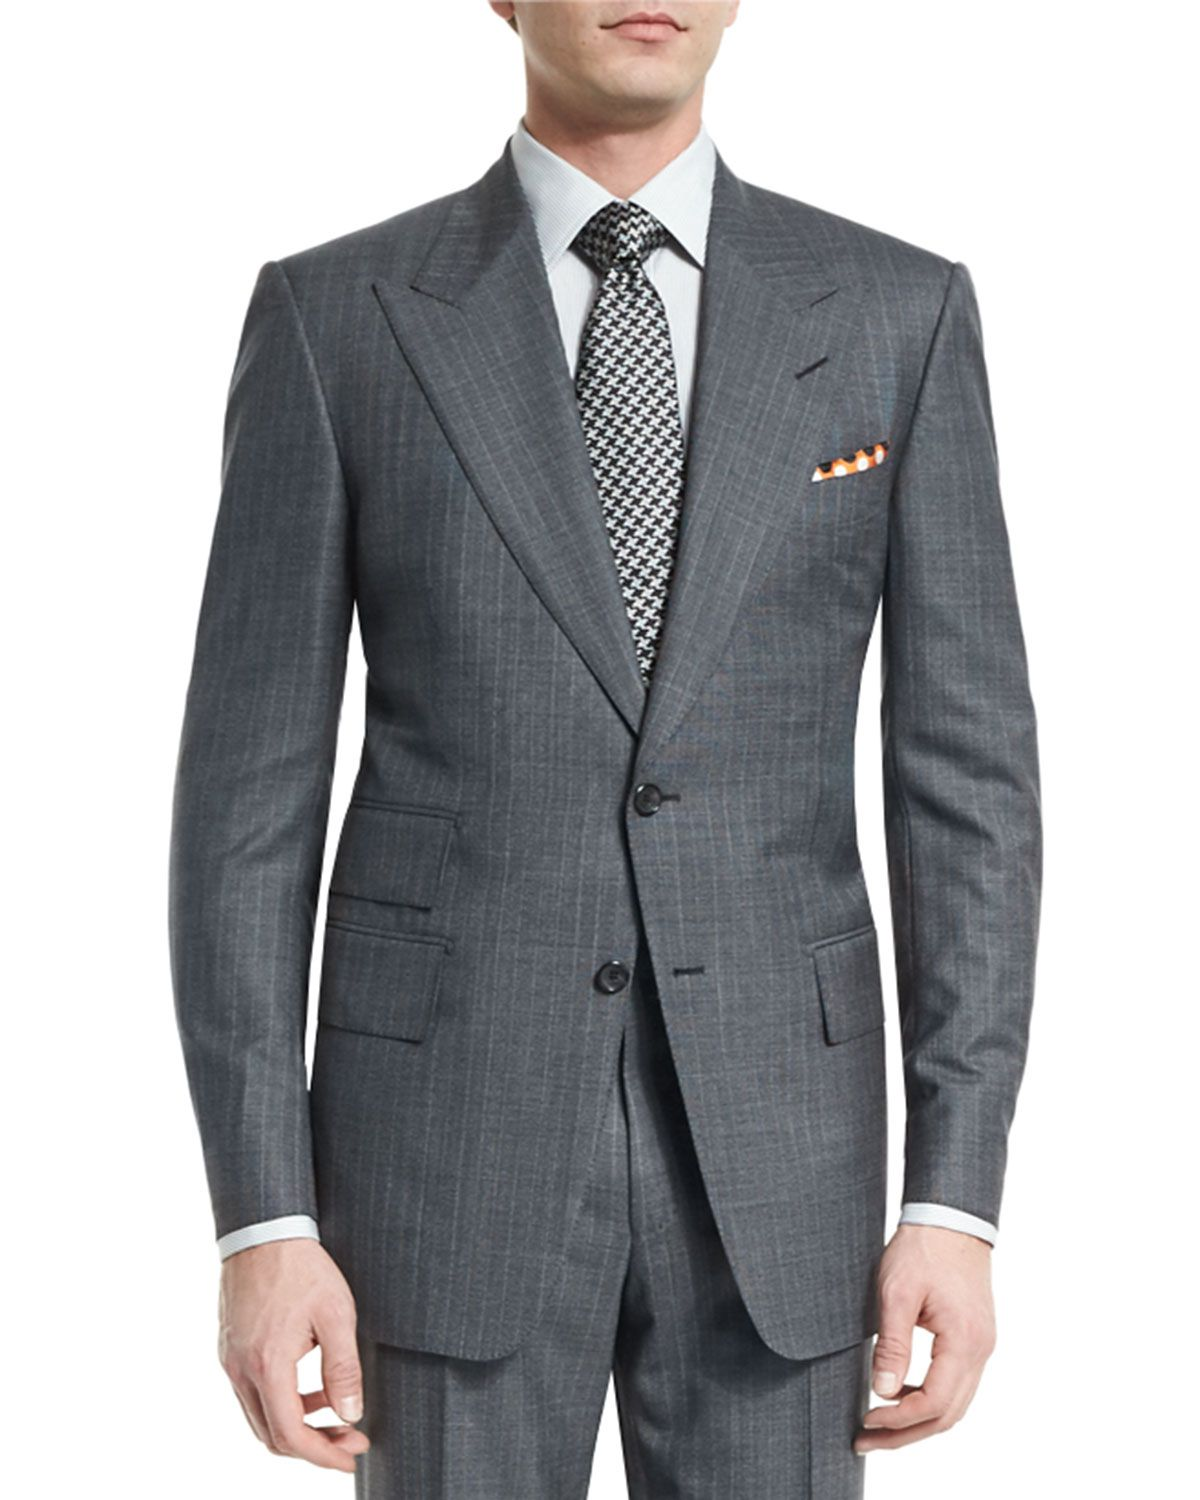 TOM FORD Windsor Base MicroPinstripe Suit, Gray is part of Pinstripe suit - Shop Windsor Base MicroPinstripe Suit, Gray from TOM FORD at Neiman Marcus, where you'll find free shipping on the latest in fashion from top designers